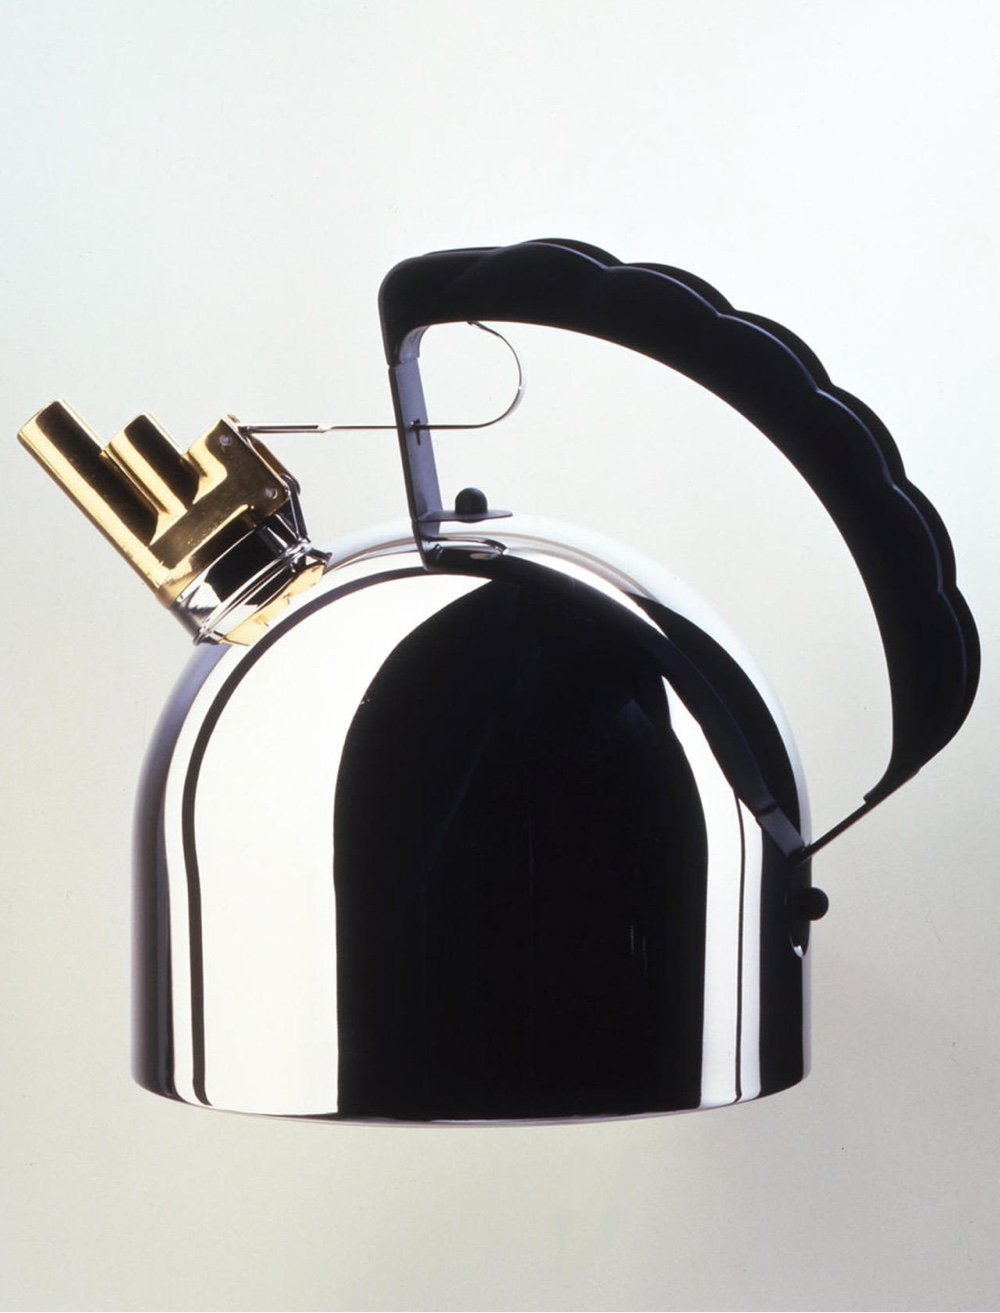 9091 (1983) kettle for Alessi. Image courtesy of Richard Sapper.